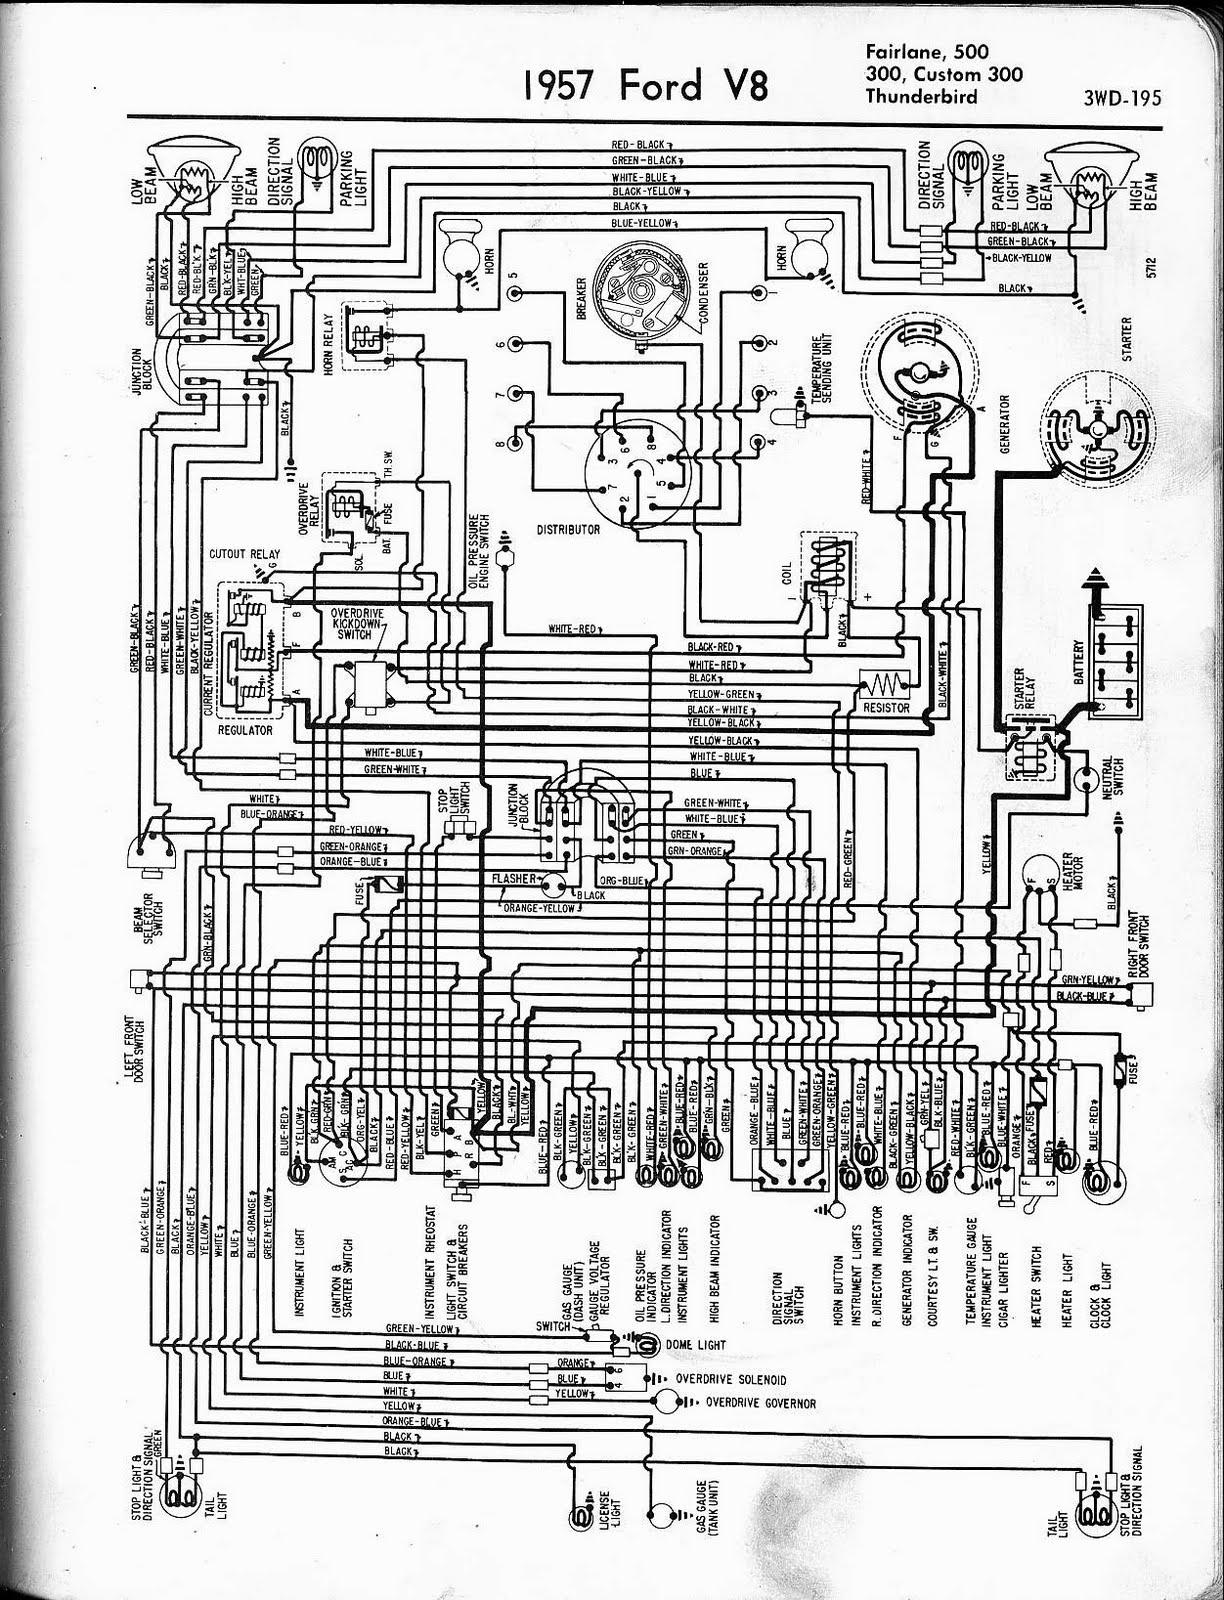 1963 Willys Jeep Wiring Free Auto Wiring Diagram May 2011